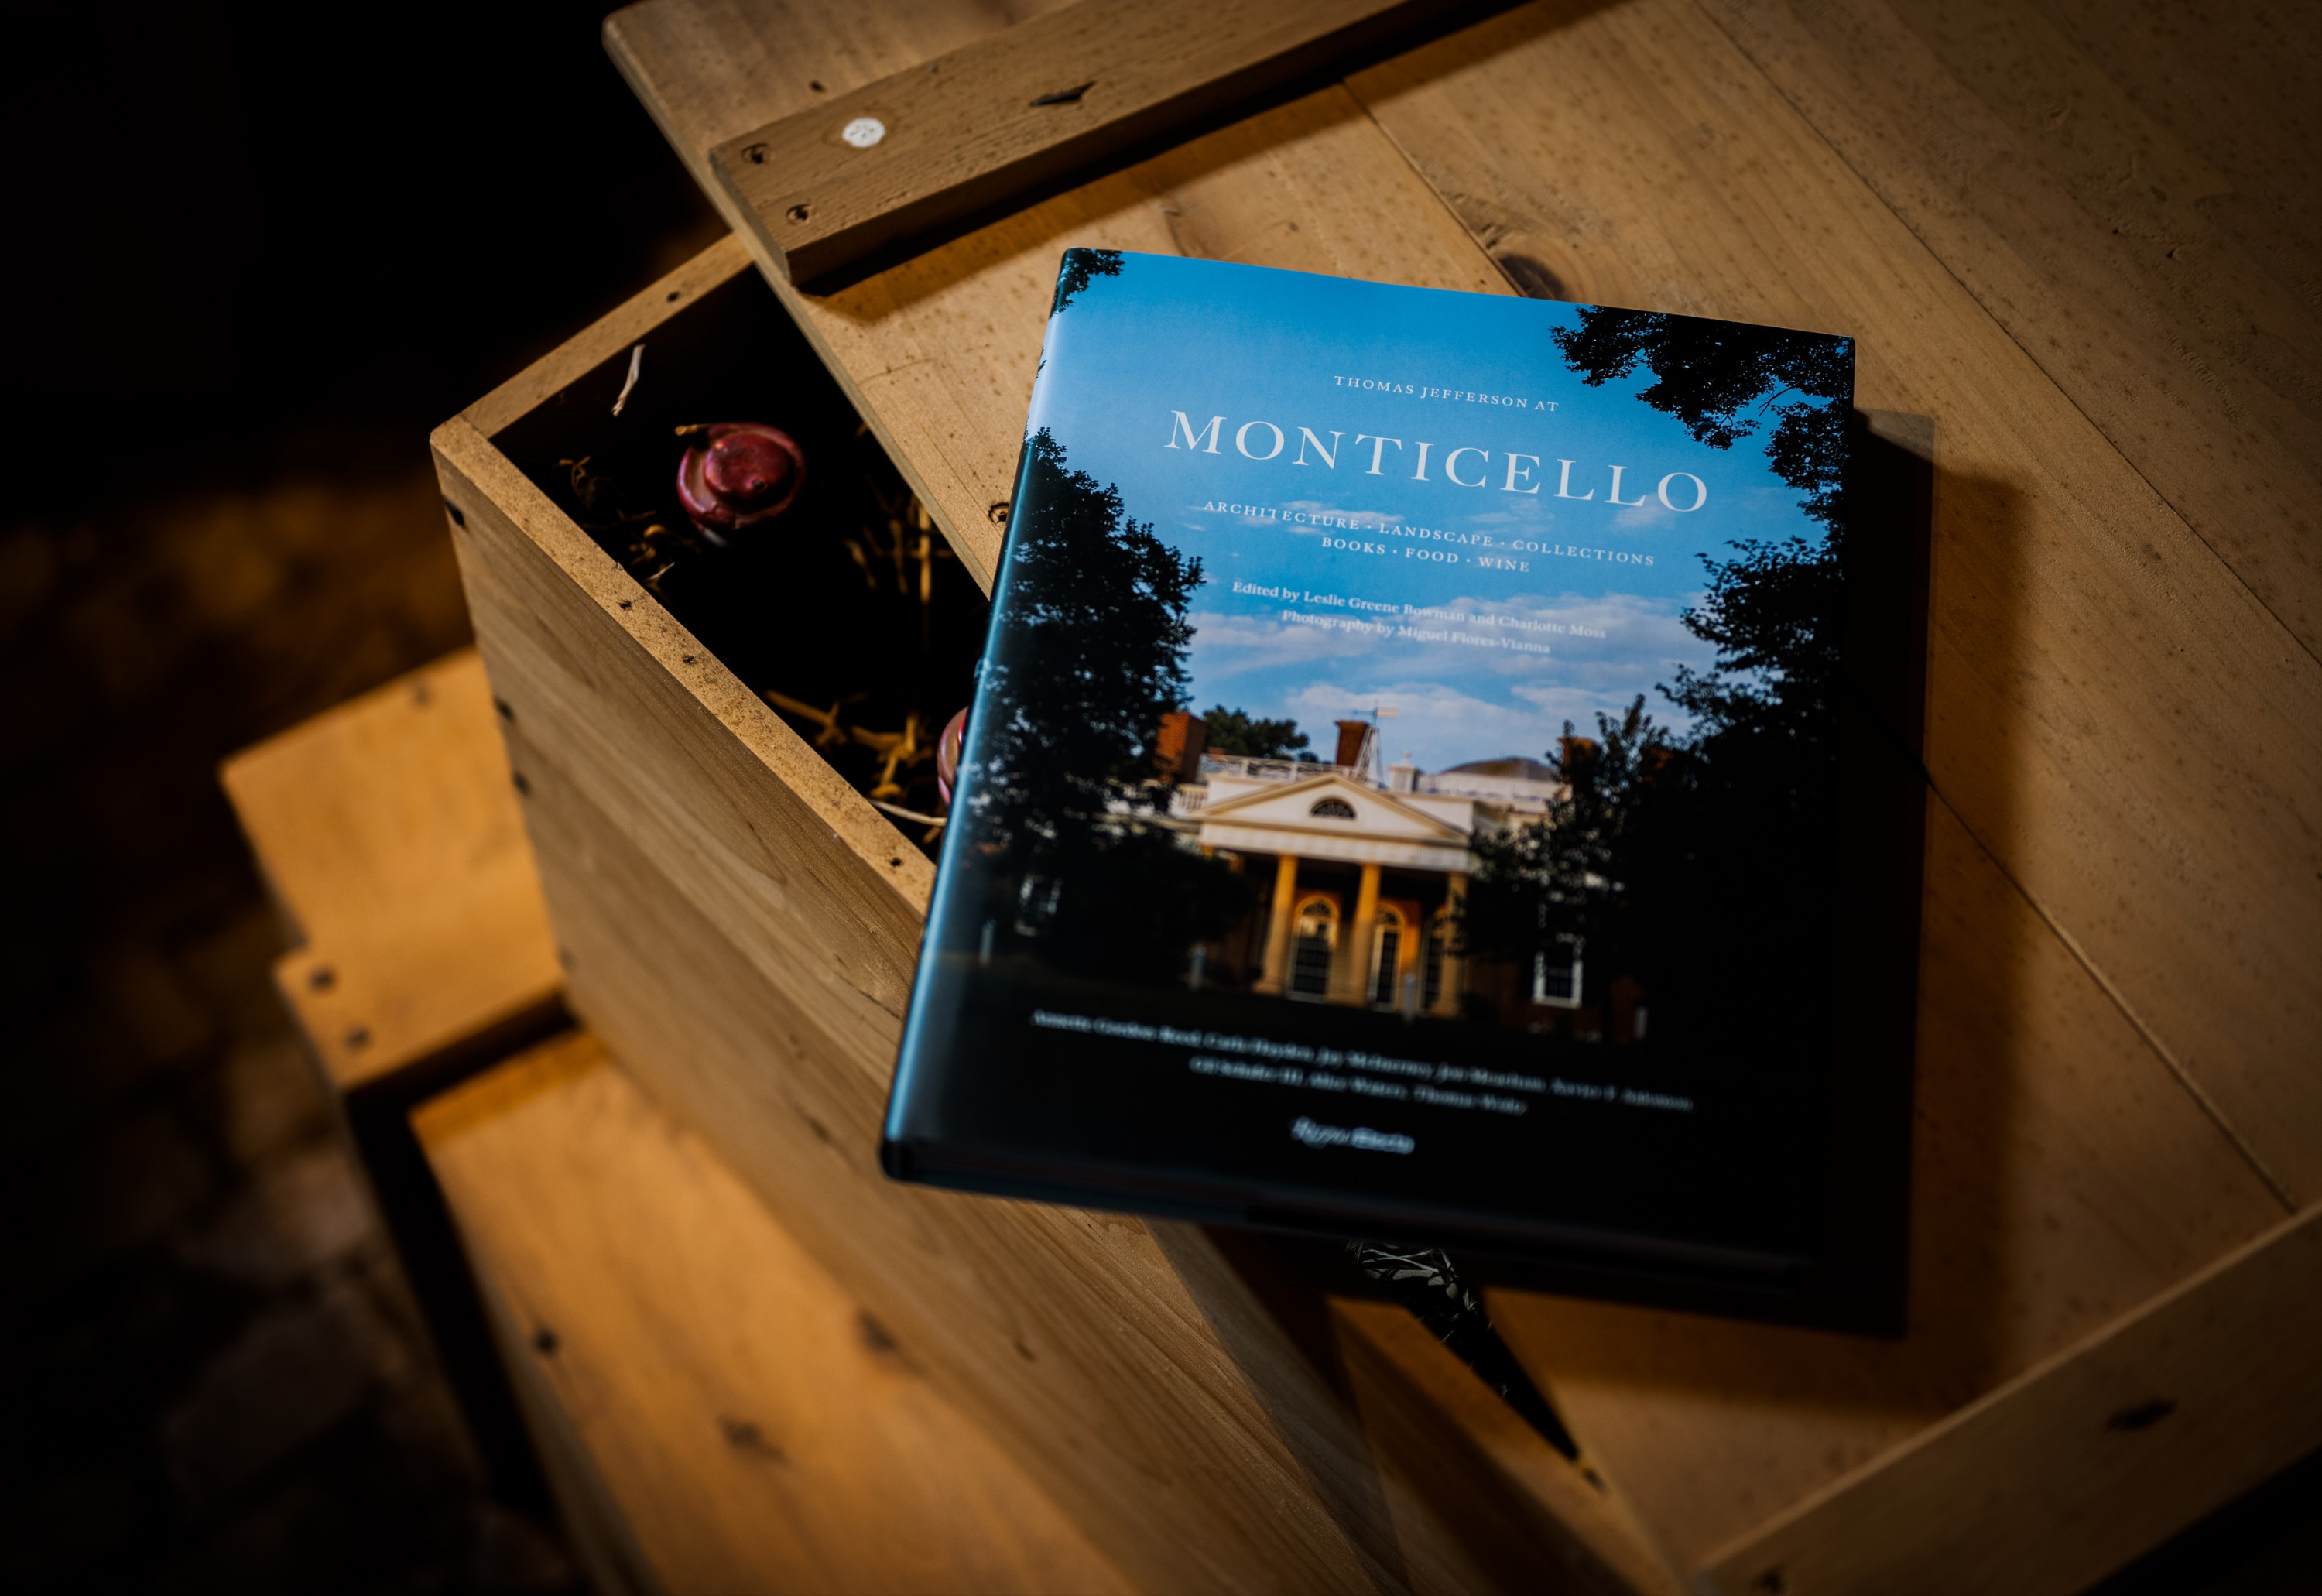 Rizzoli Book on Wine Bottle Crate